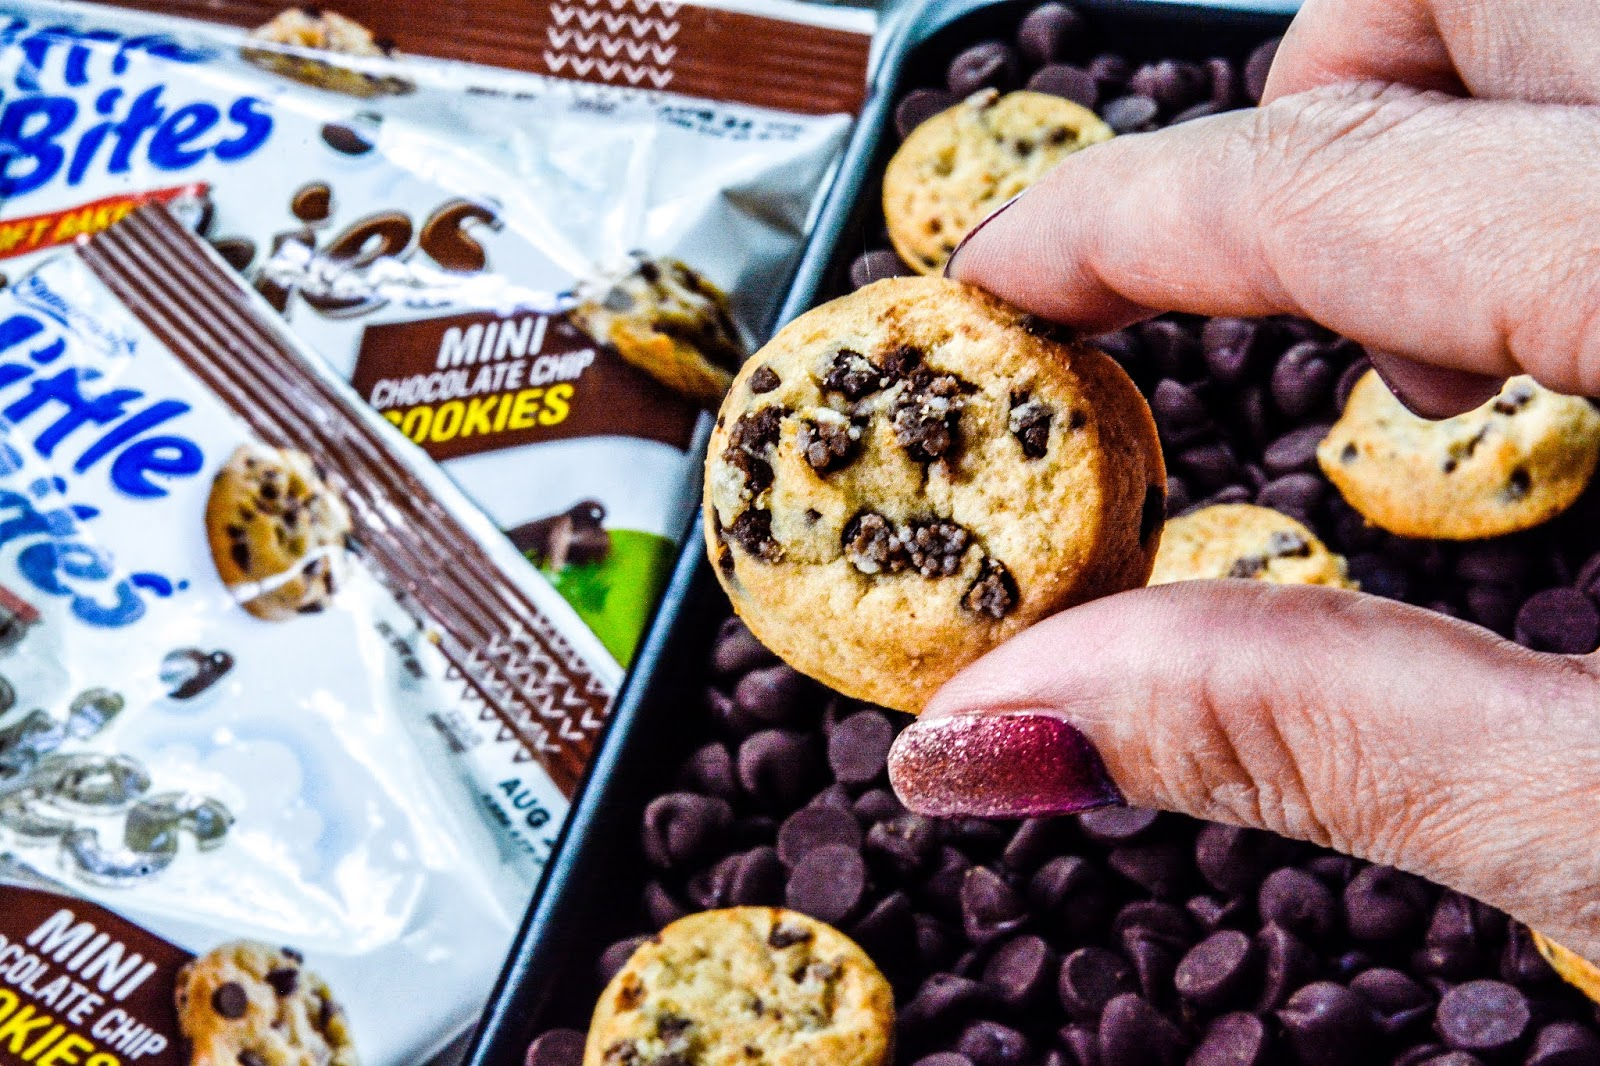 Little Bites® Soft Baked Chocolate Chip Cookies.